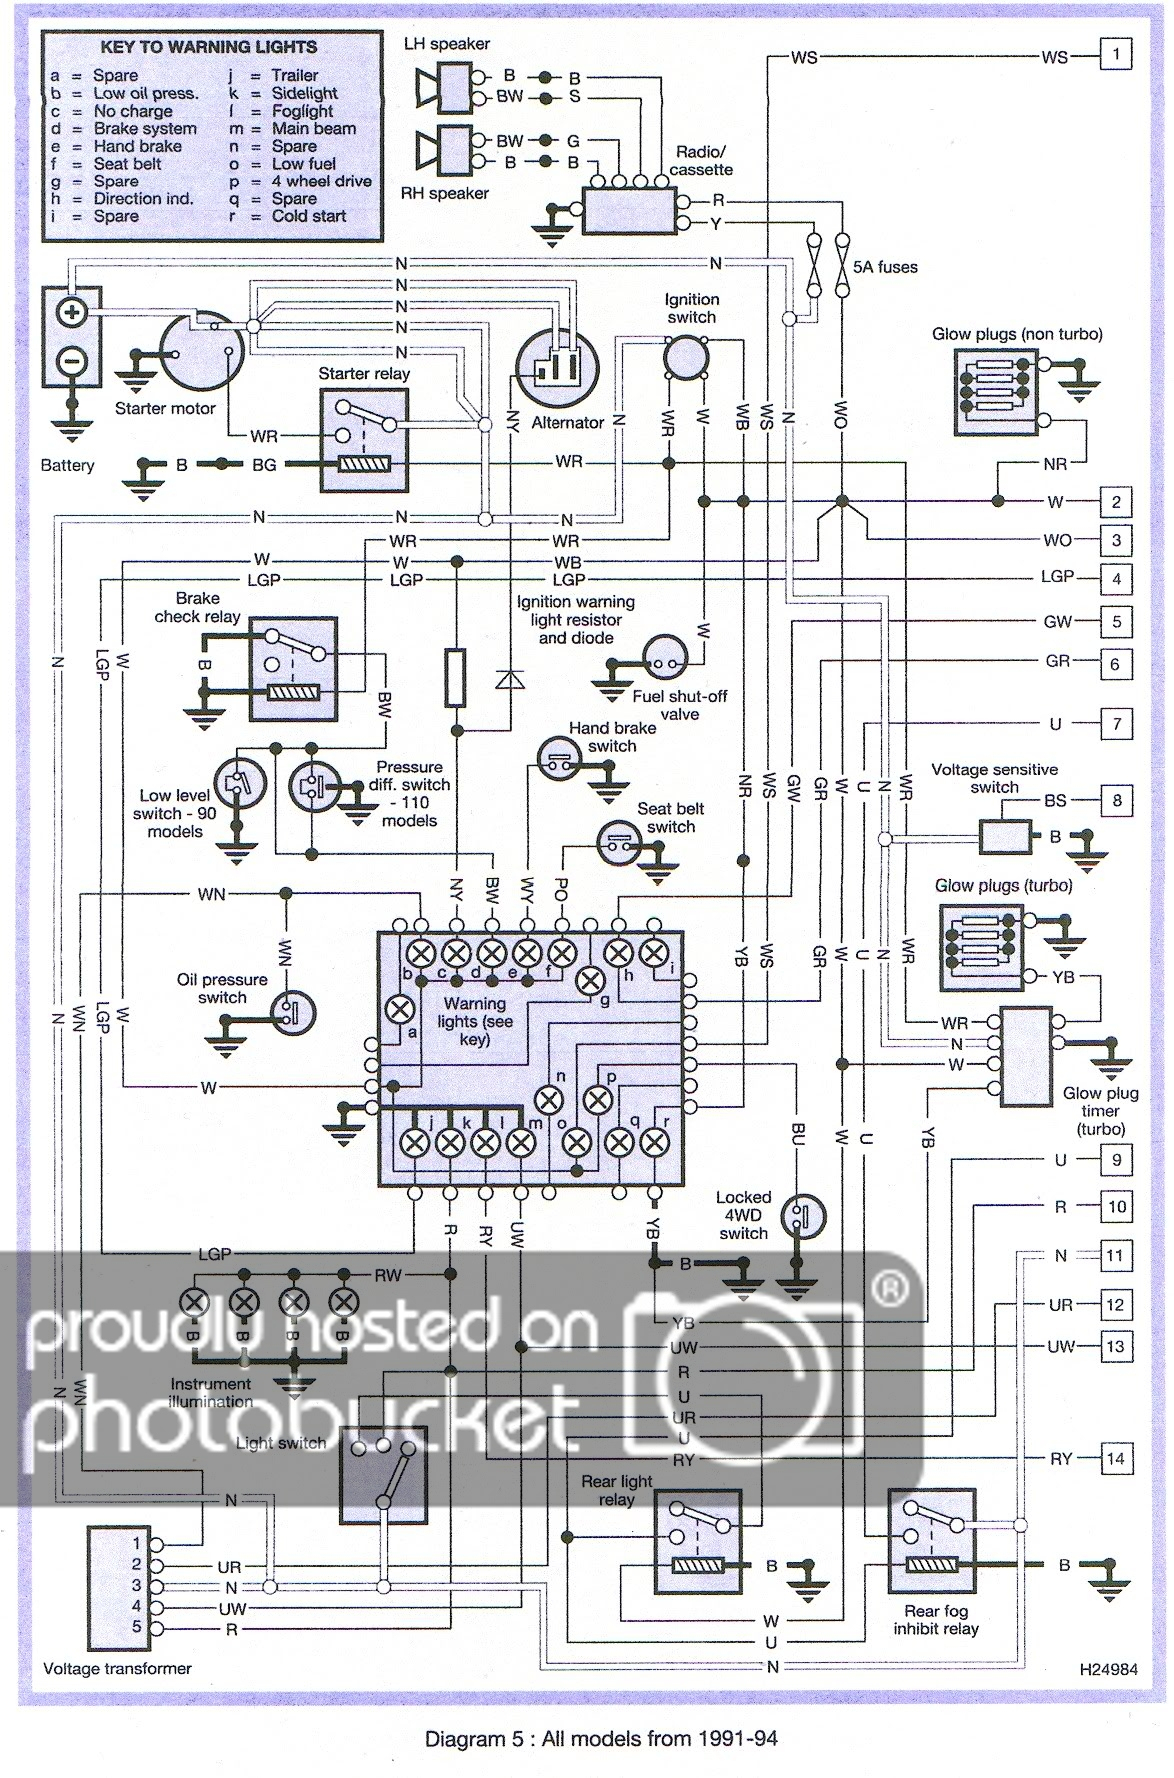 Land Rover Discovery 2 Trailer Wiring Diagram | Wiring Diagram - Land Rover Discovery 2 Trailer Wiring Diagram